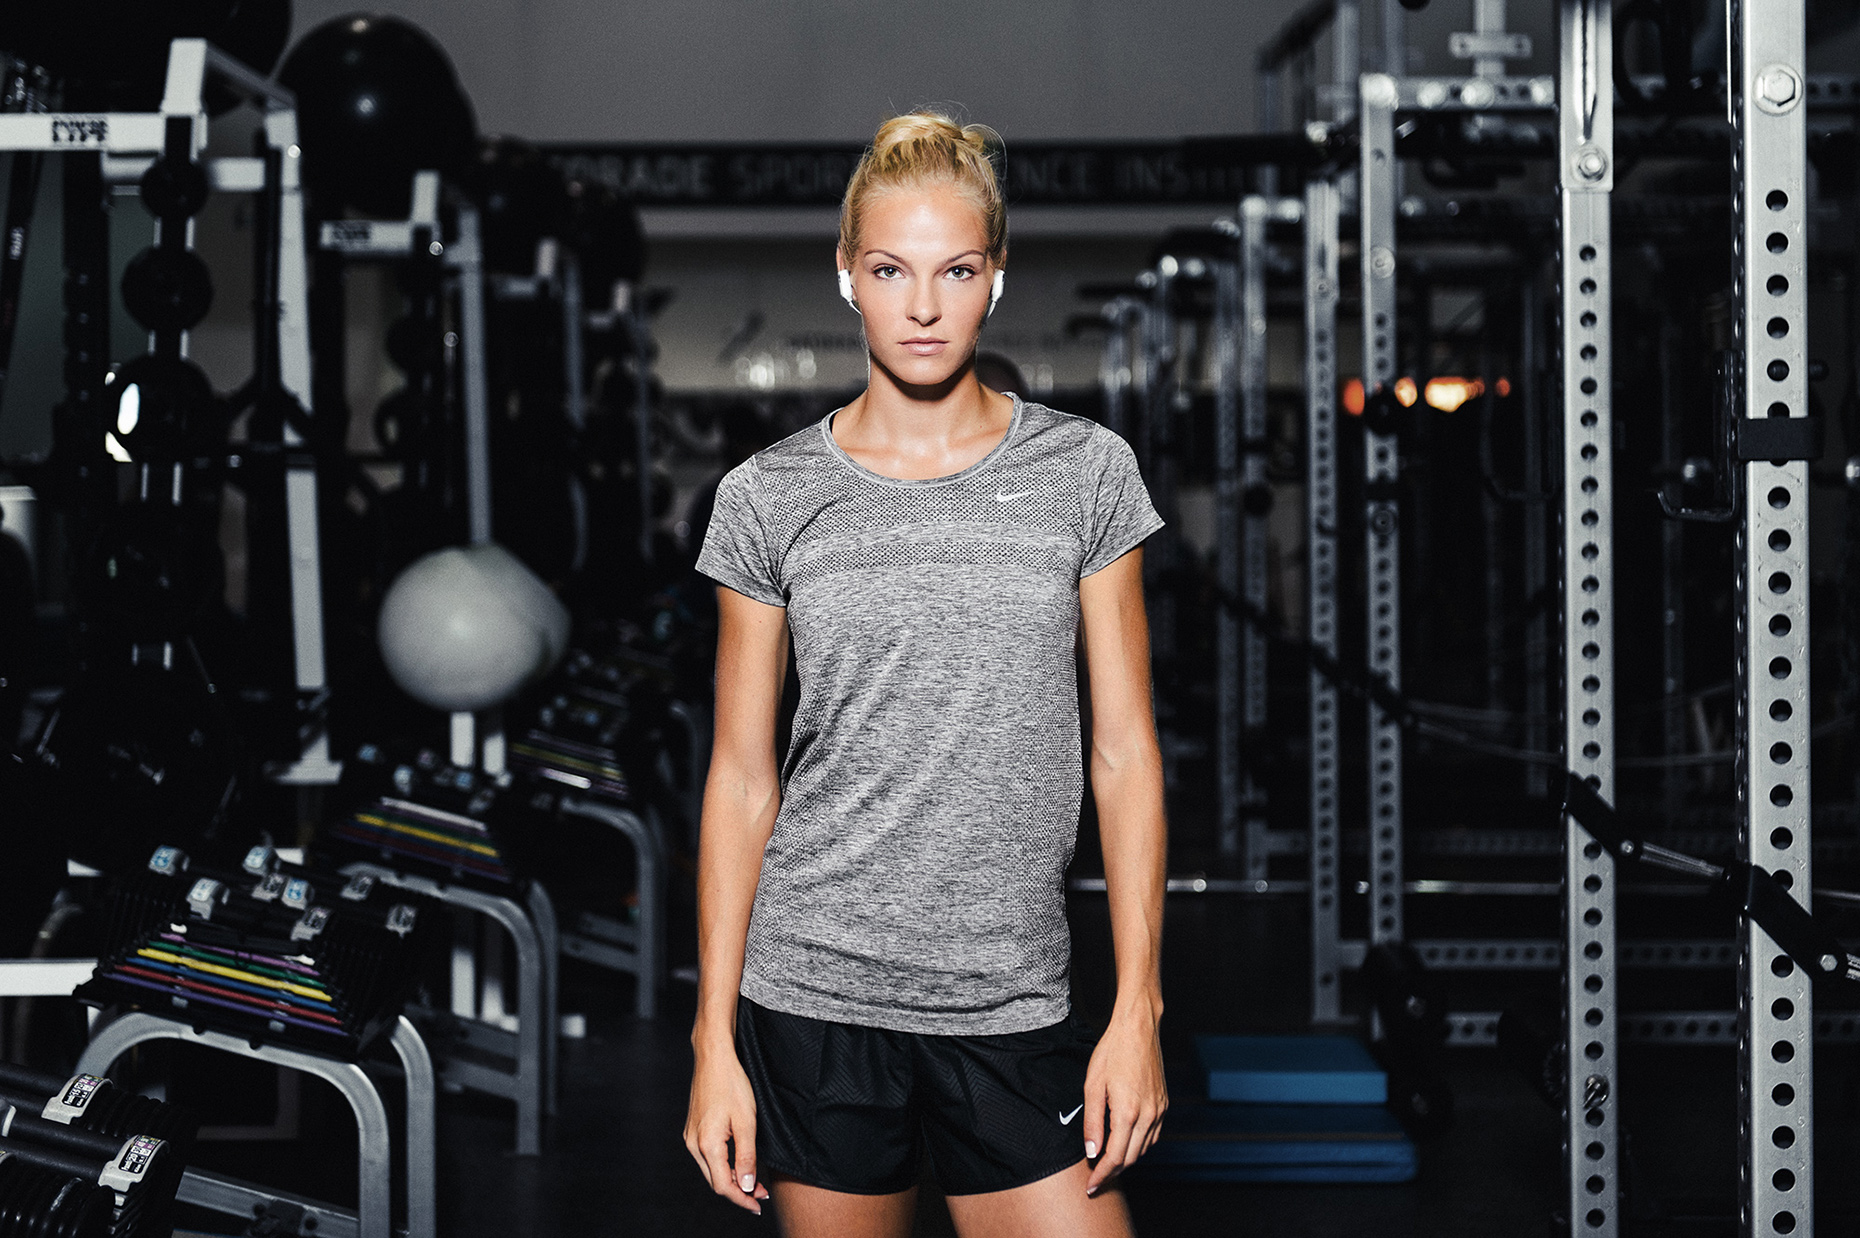 skullcandy_06252015-darya-klishina-2636